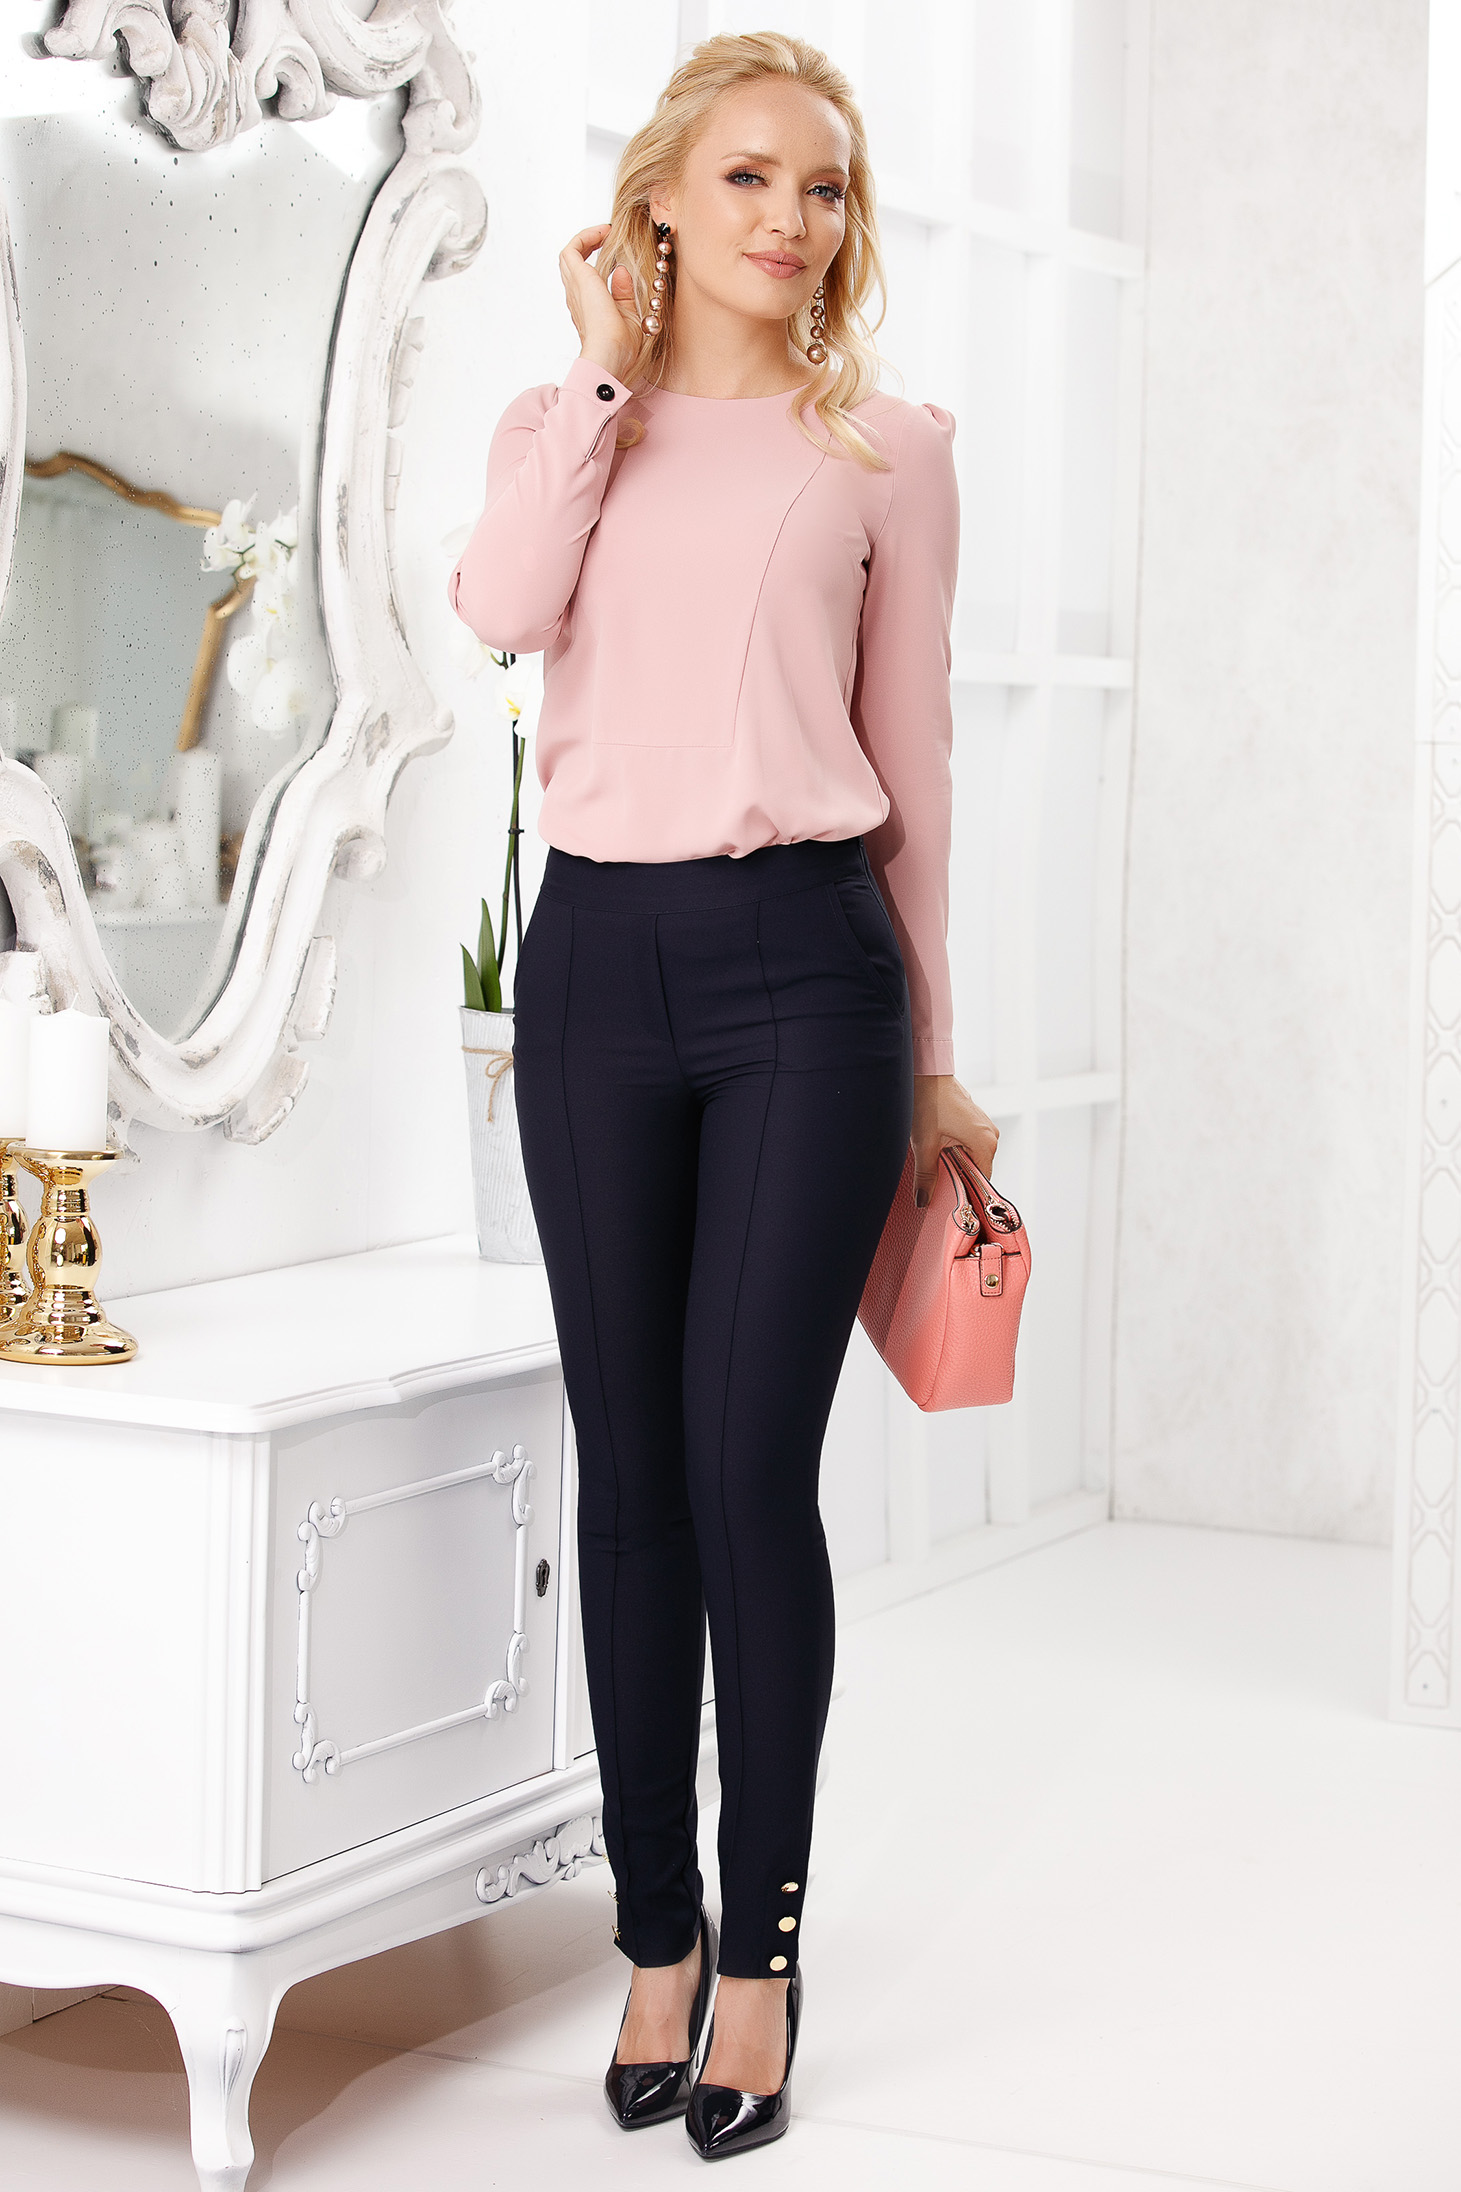 Darkblue trousers elegant long conical with pockets with button accessories cloth thin fabric